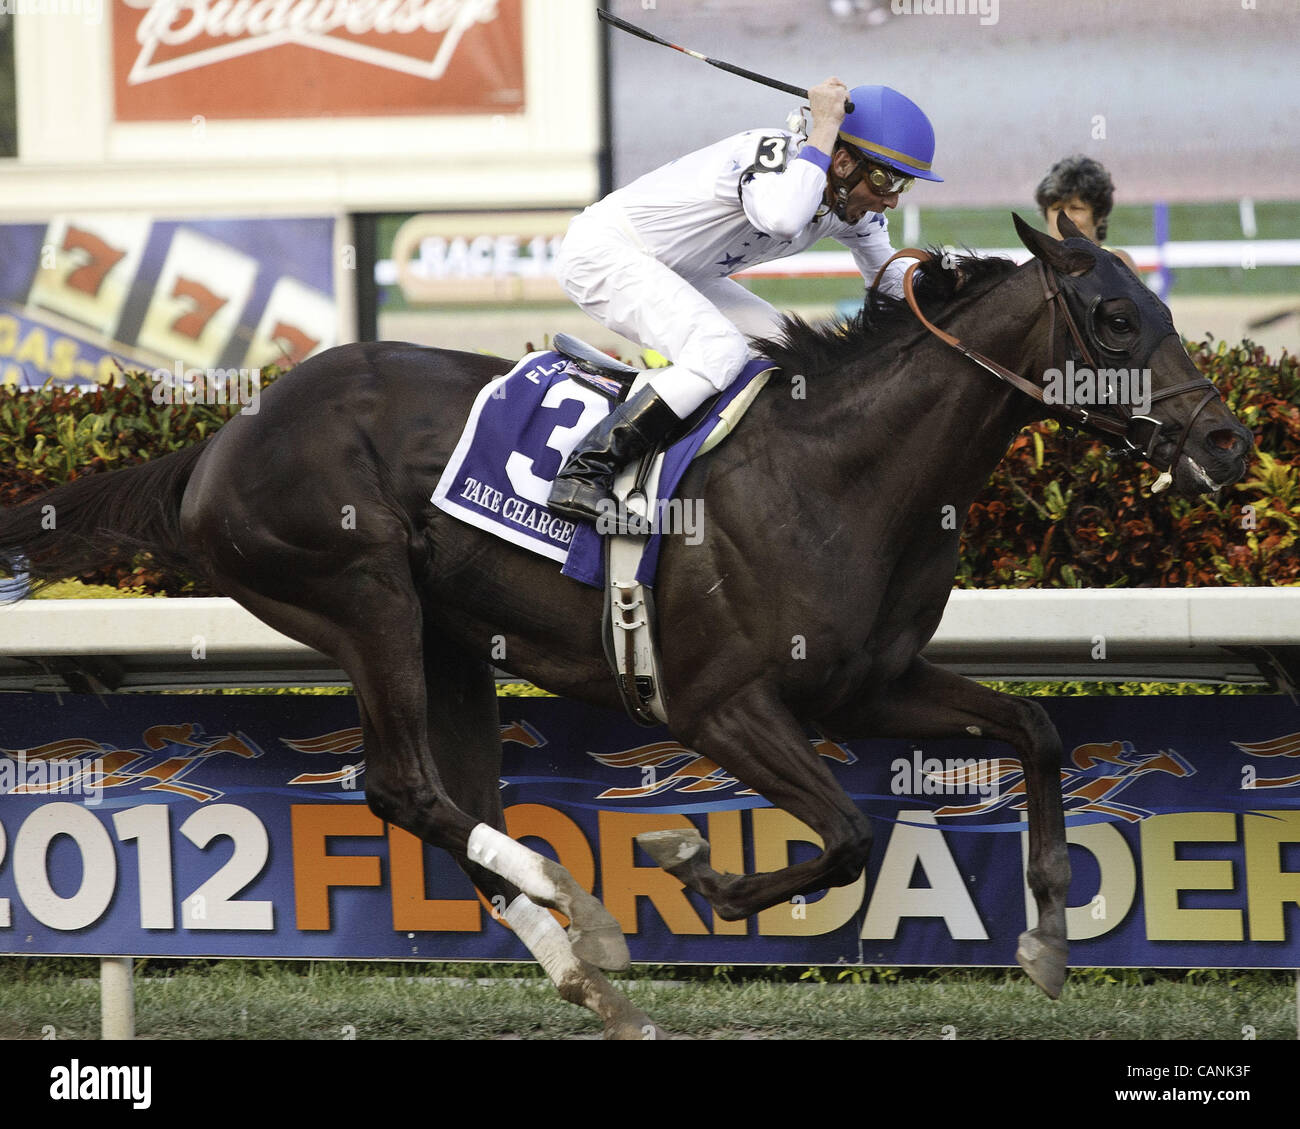 March 31, 2012 - Hallandale Beach, Florida, U.S. - Take Charge Indy with Calvin Borel up wins the Florida Derby - Stock Image